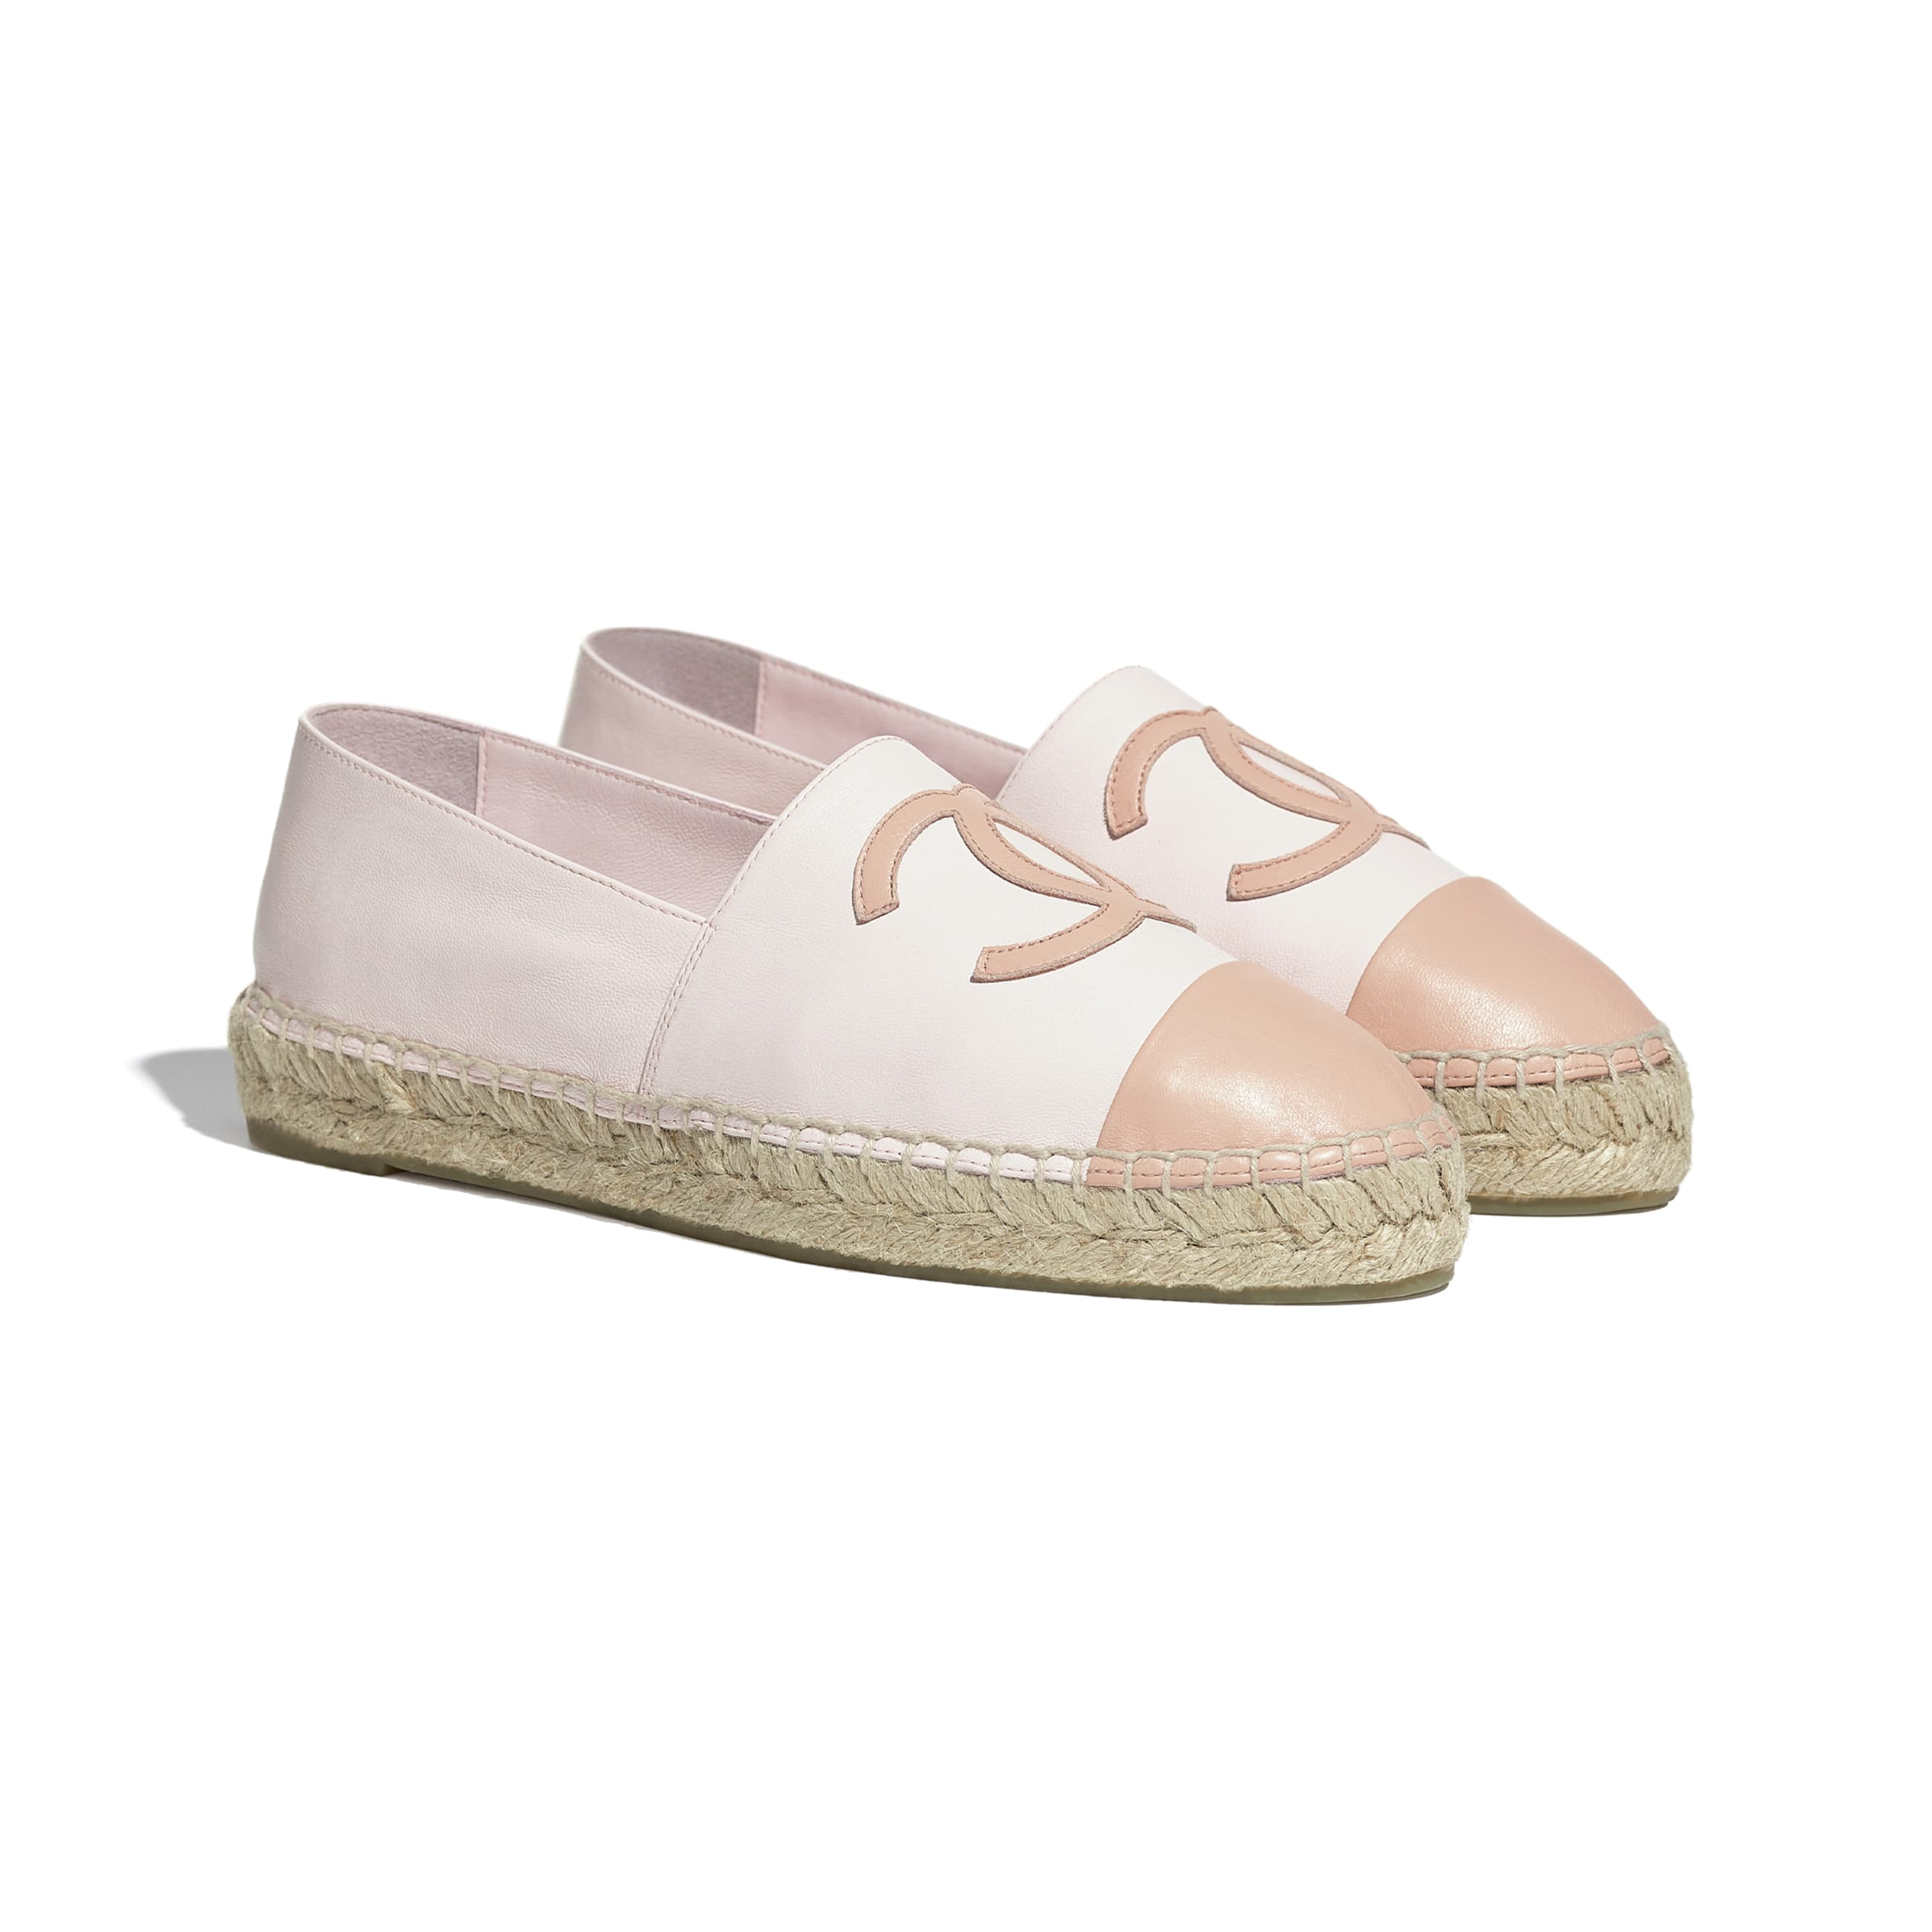 Espadrilles - Light Pink - Lambskin - CHANEL - Alternative view - see standard sized version